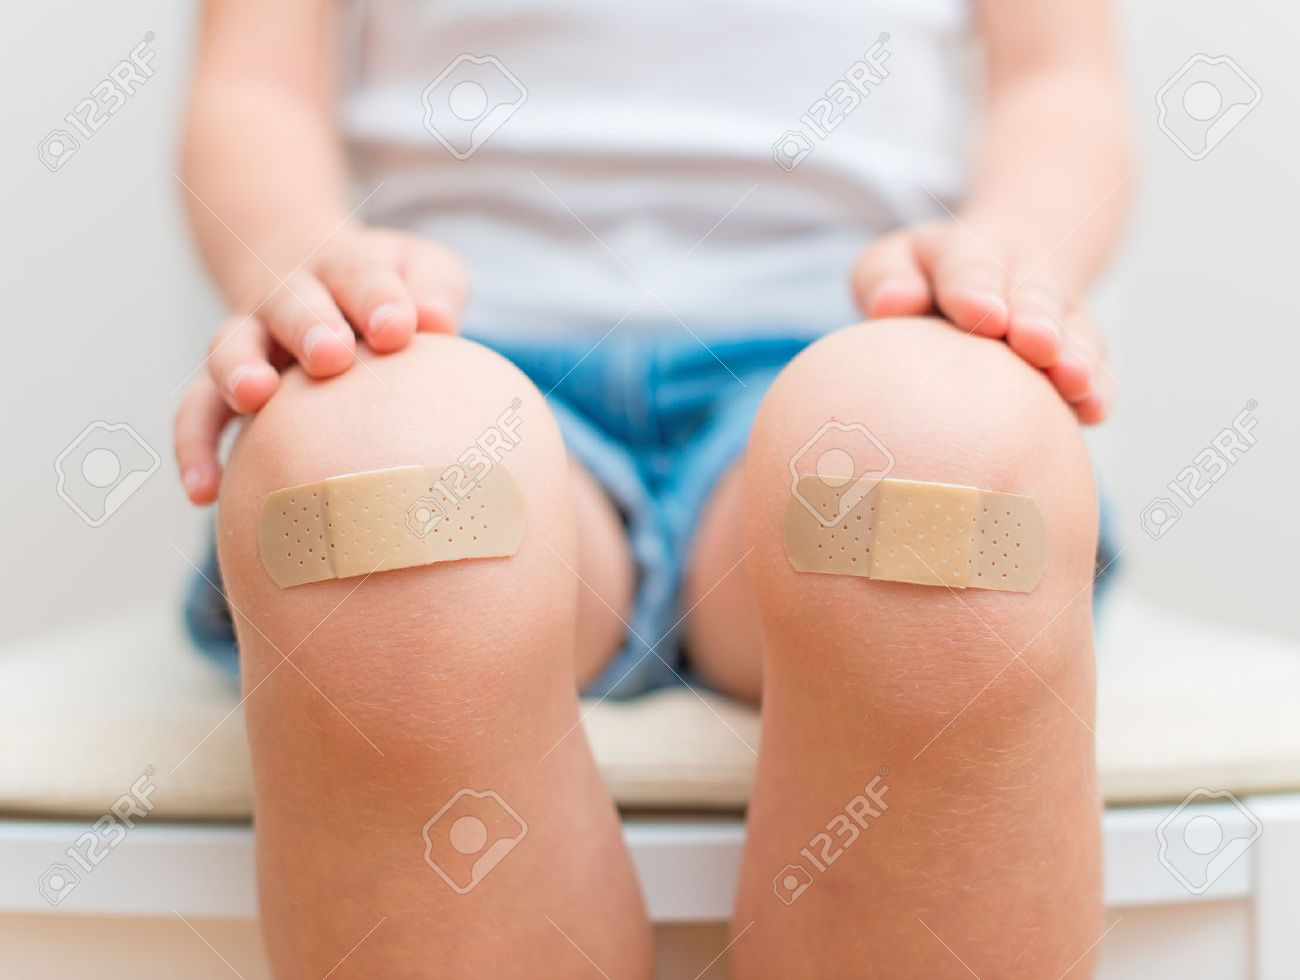 Child knee with an adhesive bandage - 30980610